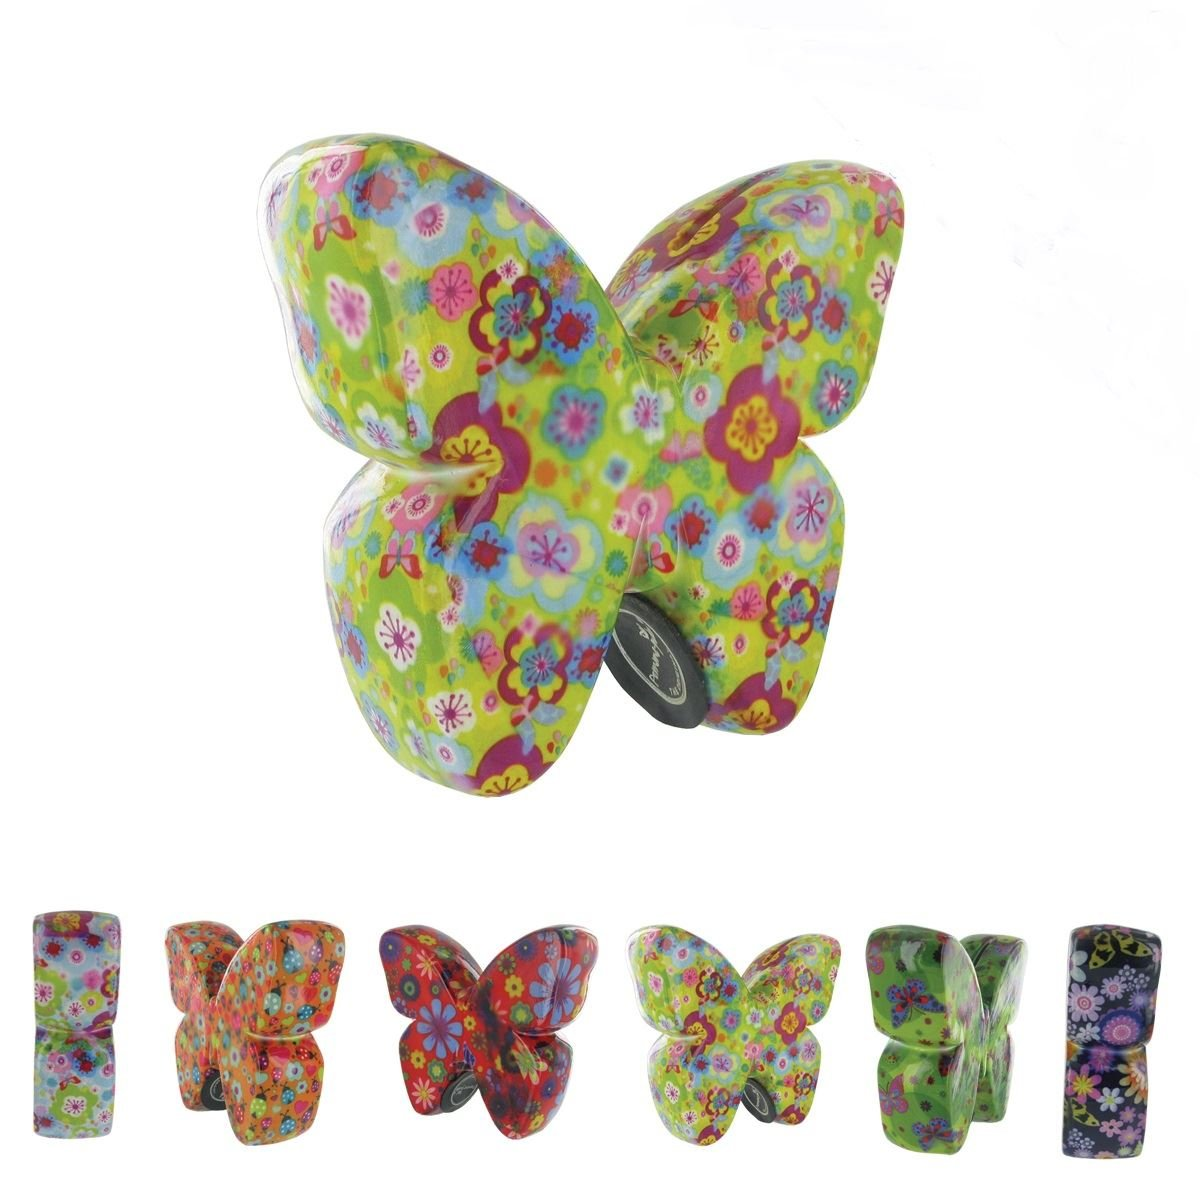 Pomme-Pidou Butterfly Moneybox. Colourful and Collectable Perfect Plants